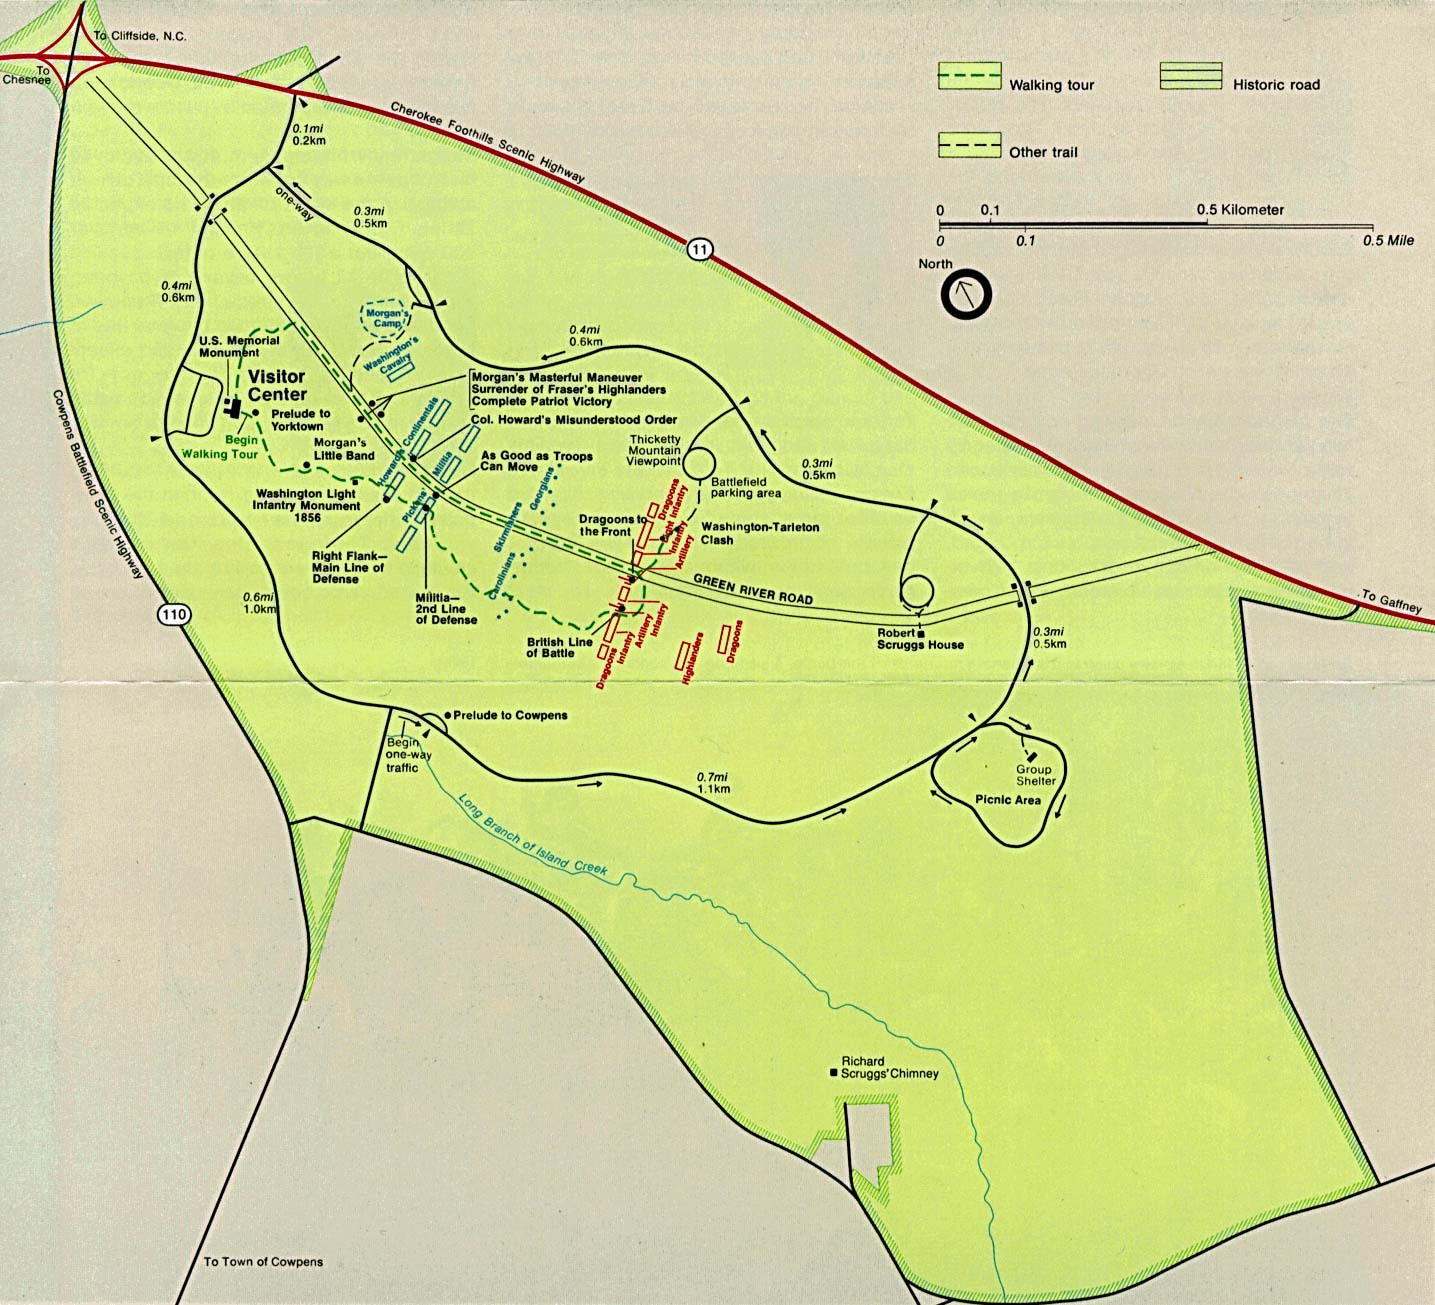 Maps of United States National Parks, Monuments and Historic Sites Cowpens National Battlefield [South Carolina] (Park Map) 1995 (293K)